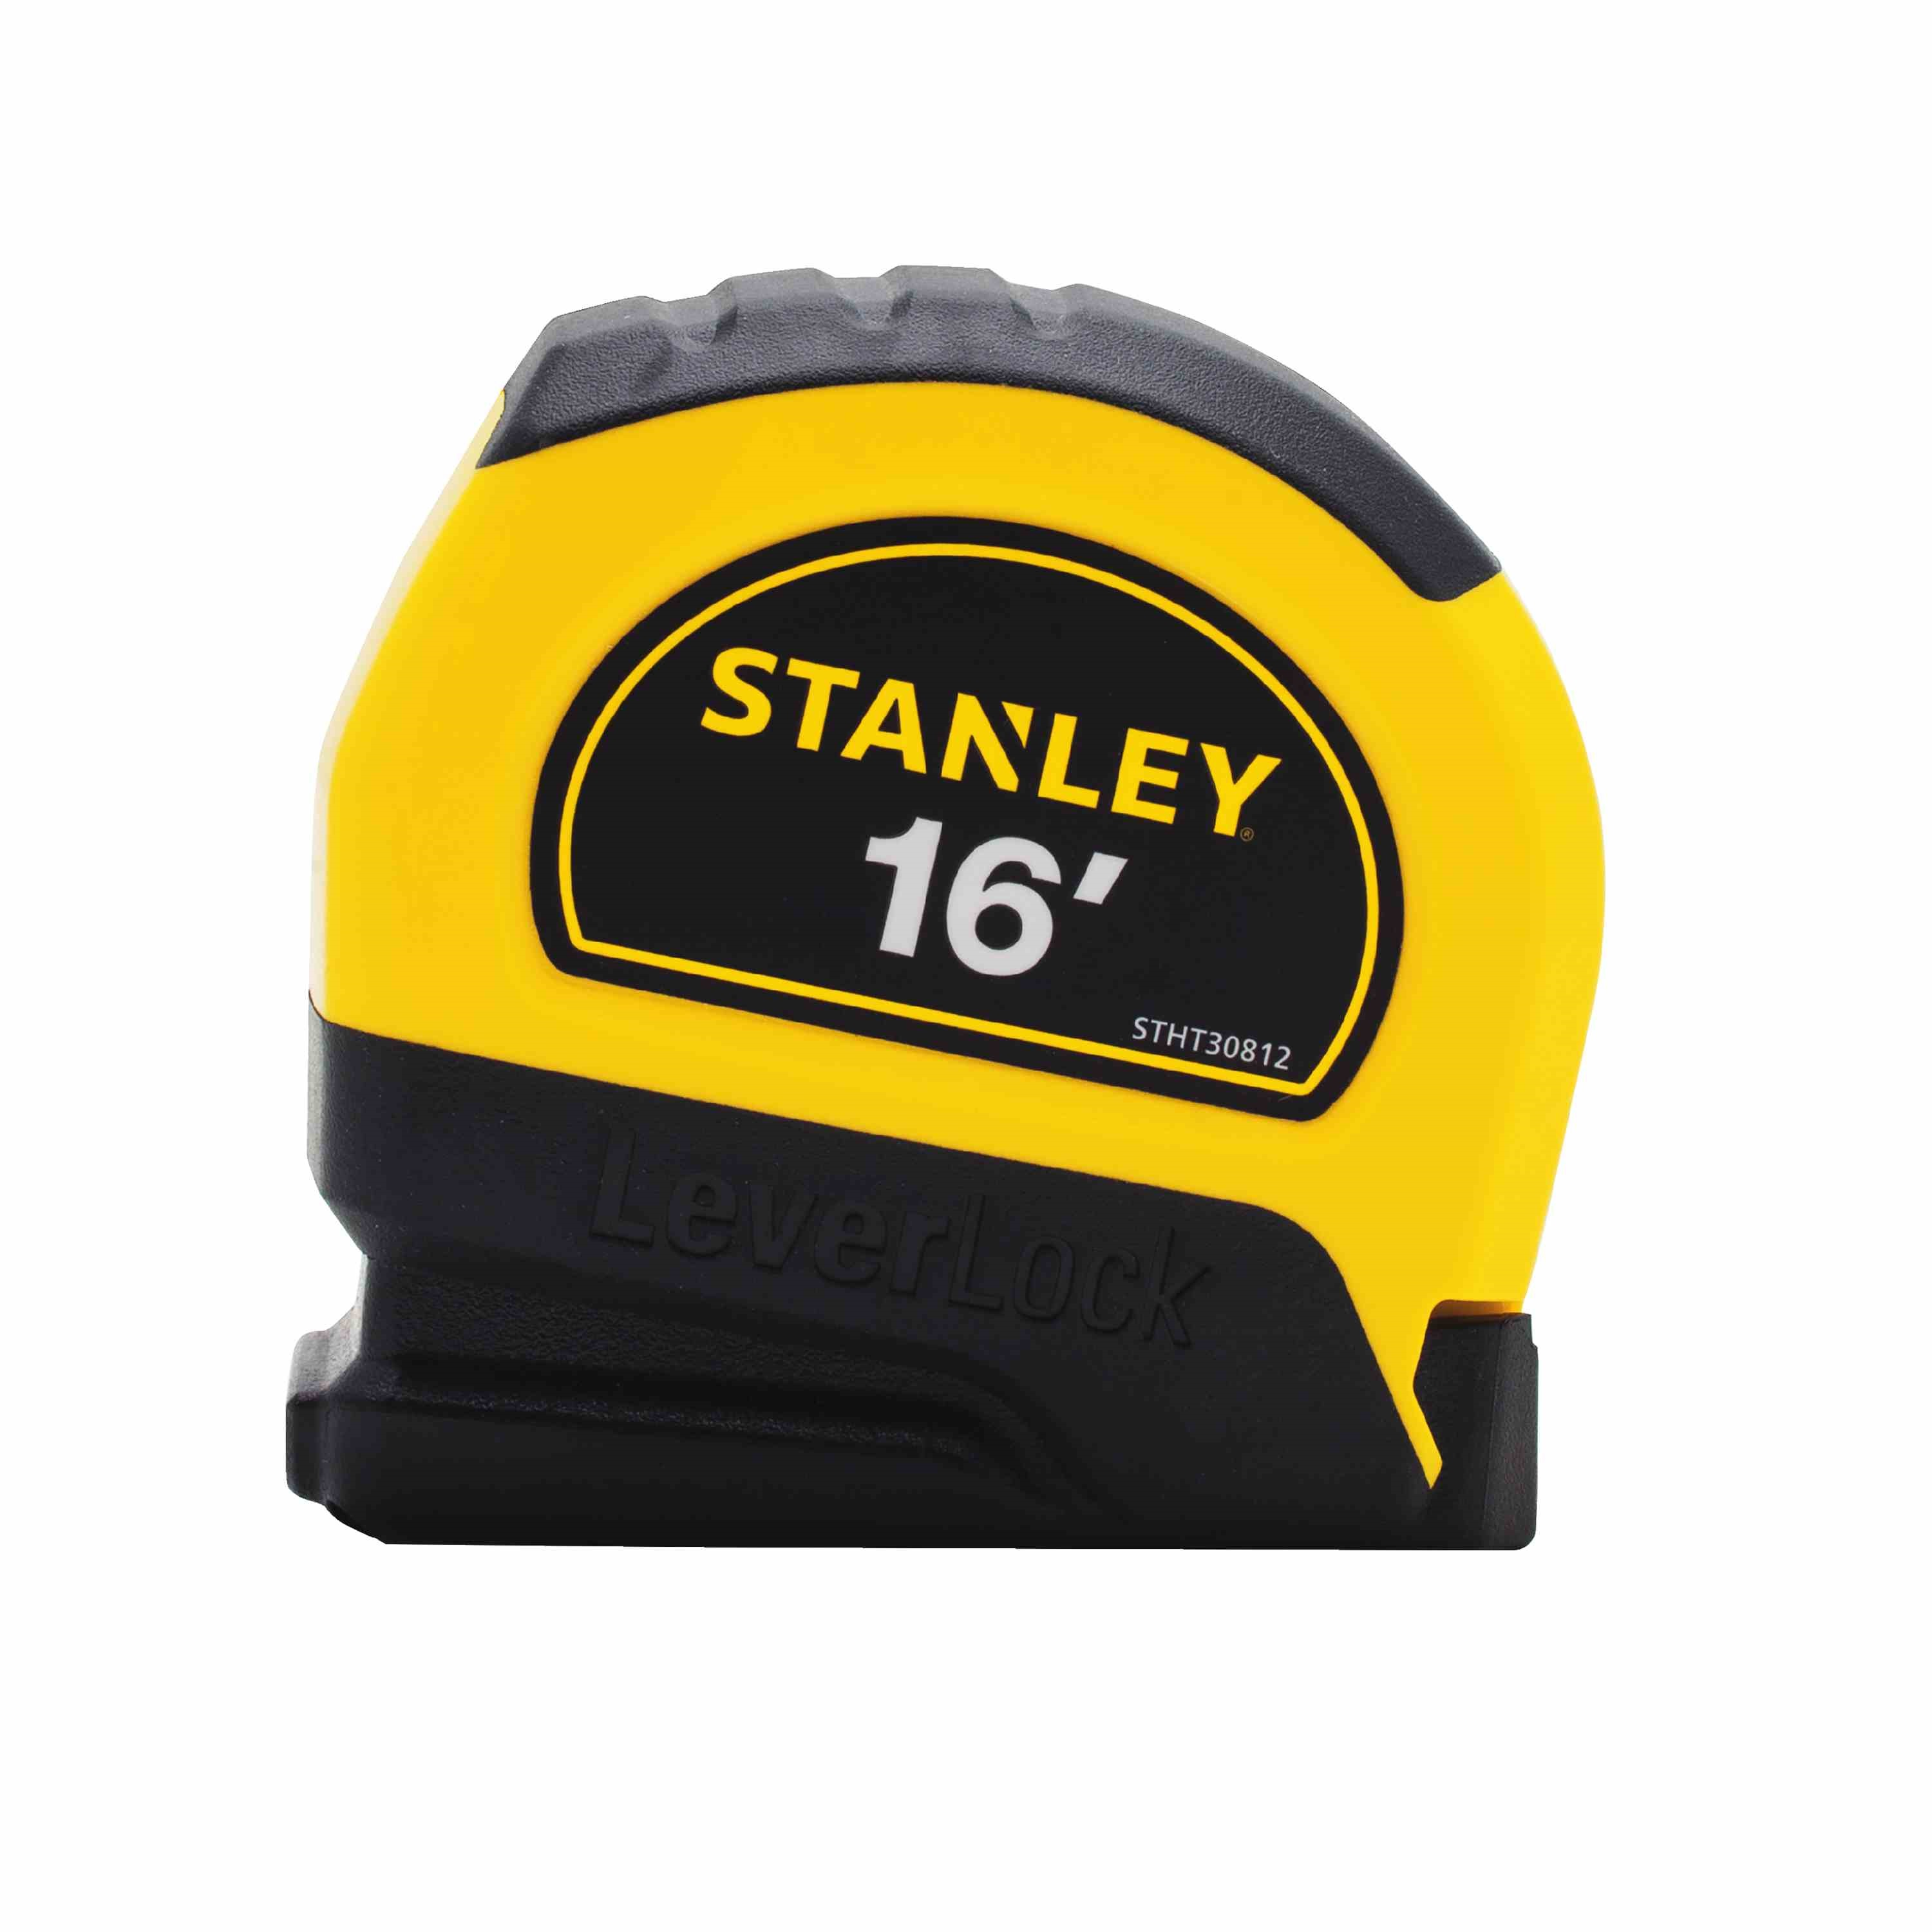 Stanley Tools - 16 ft LEVERLOCK Tape Measure - STHT30812